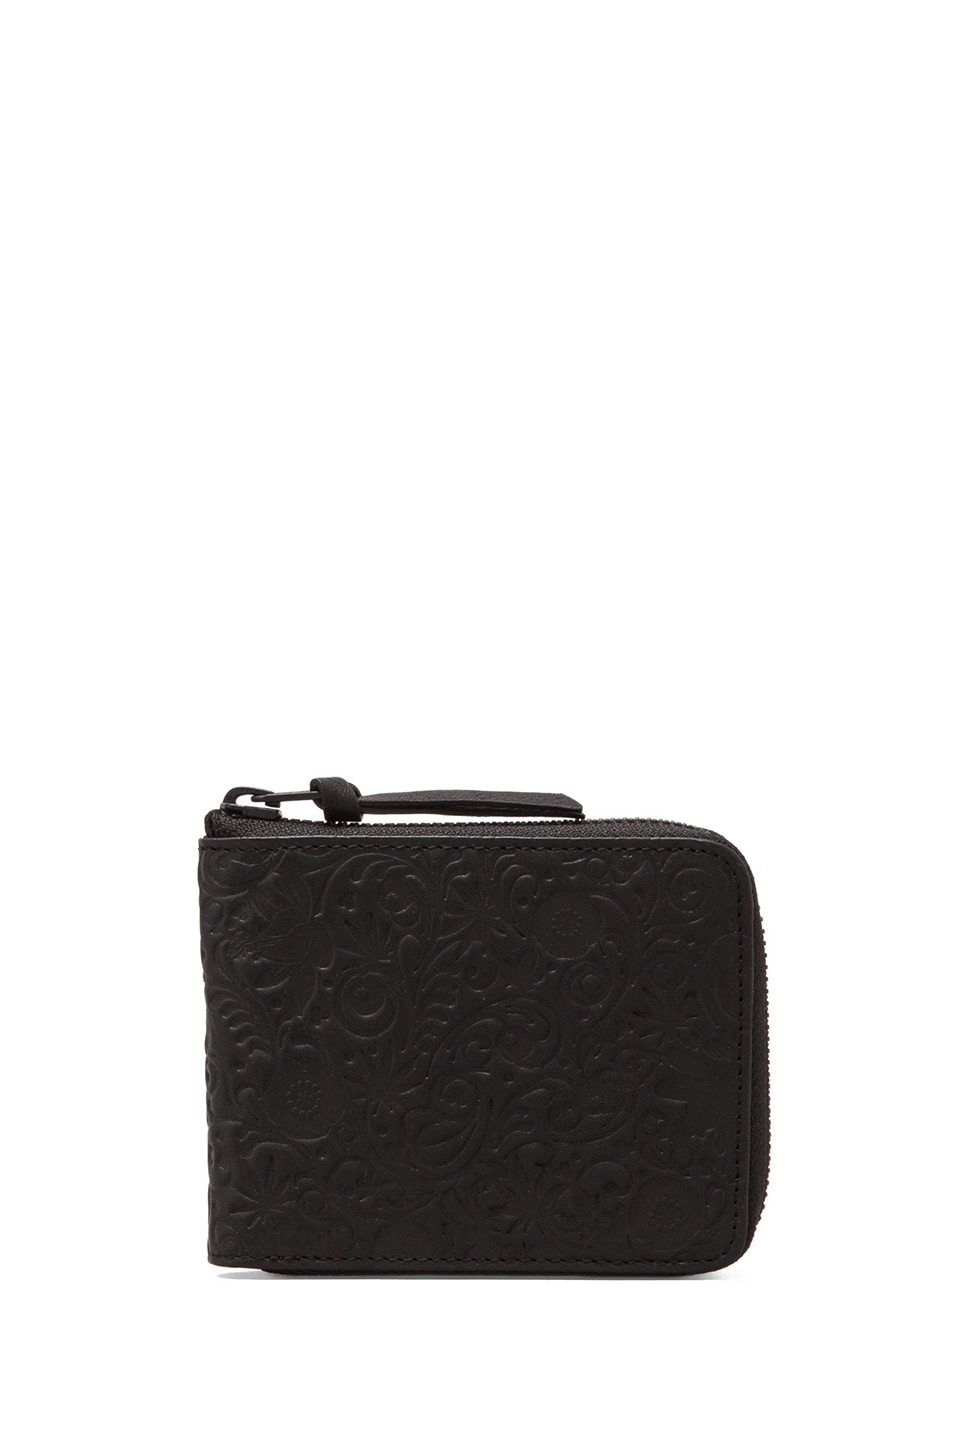 SSUR Khokhloma Zip Wallet in Matte Black